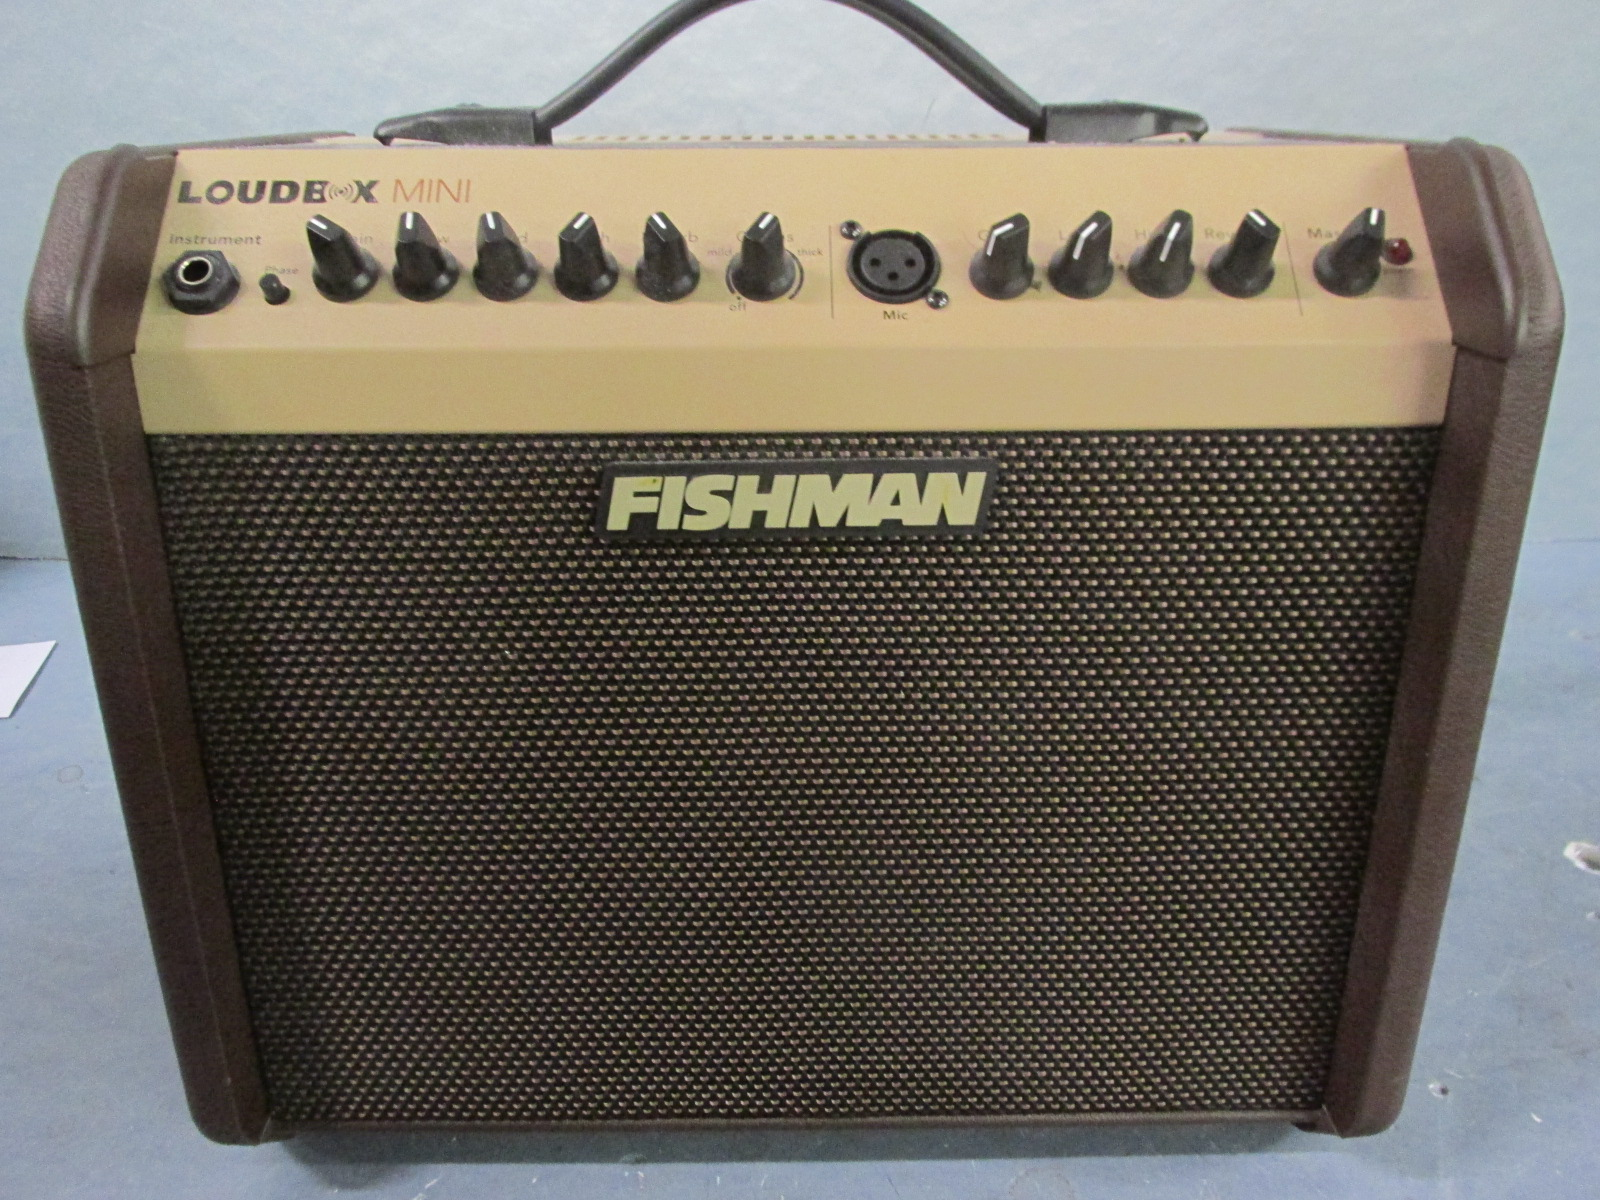 Fishman - Loudbox Mini